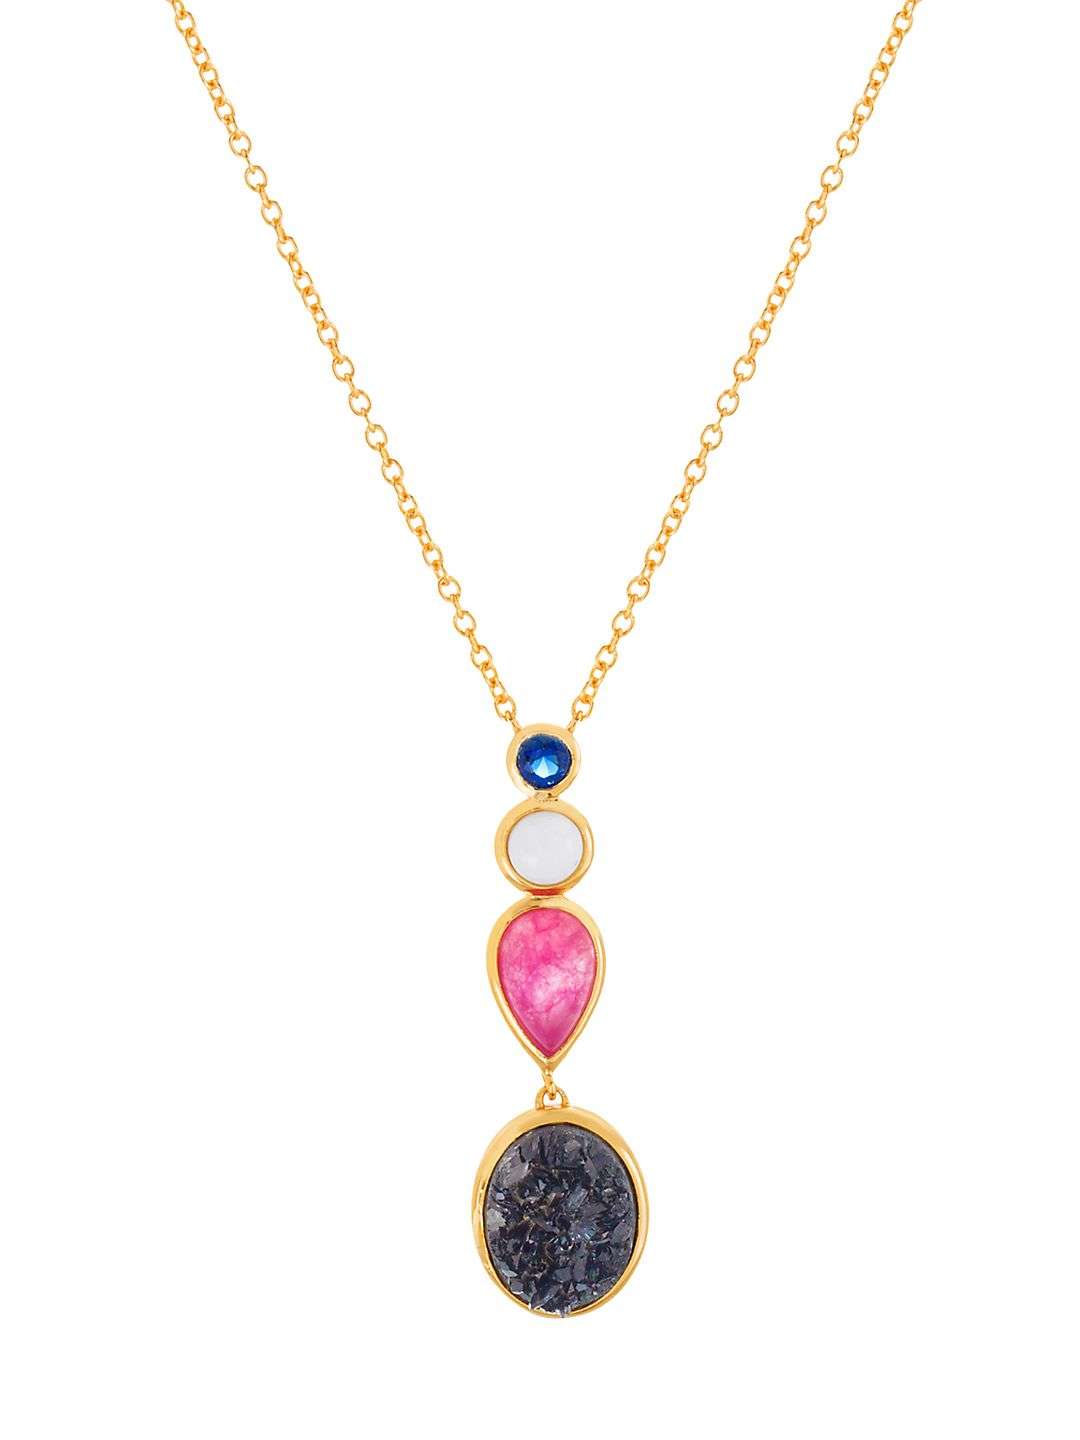 Goldplated and Druzy Stone Linear Pendant Necklace